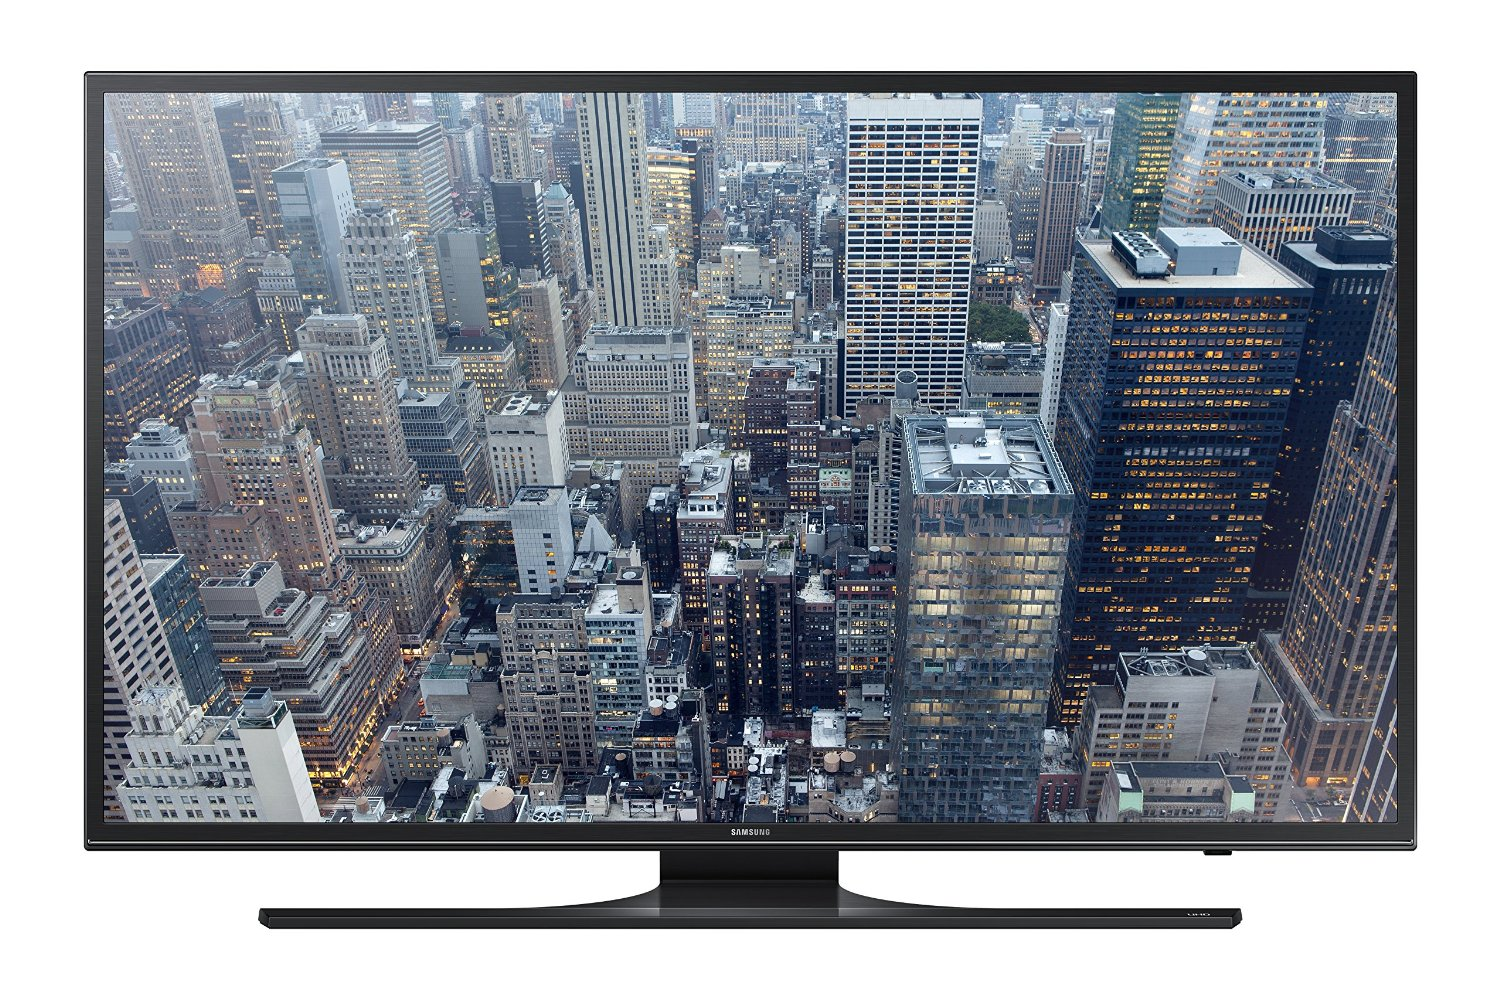 Samsung-UN60JU6500-60-Inch-4K-Ultra-HD-Smart-LED-TV-2015-Model